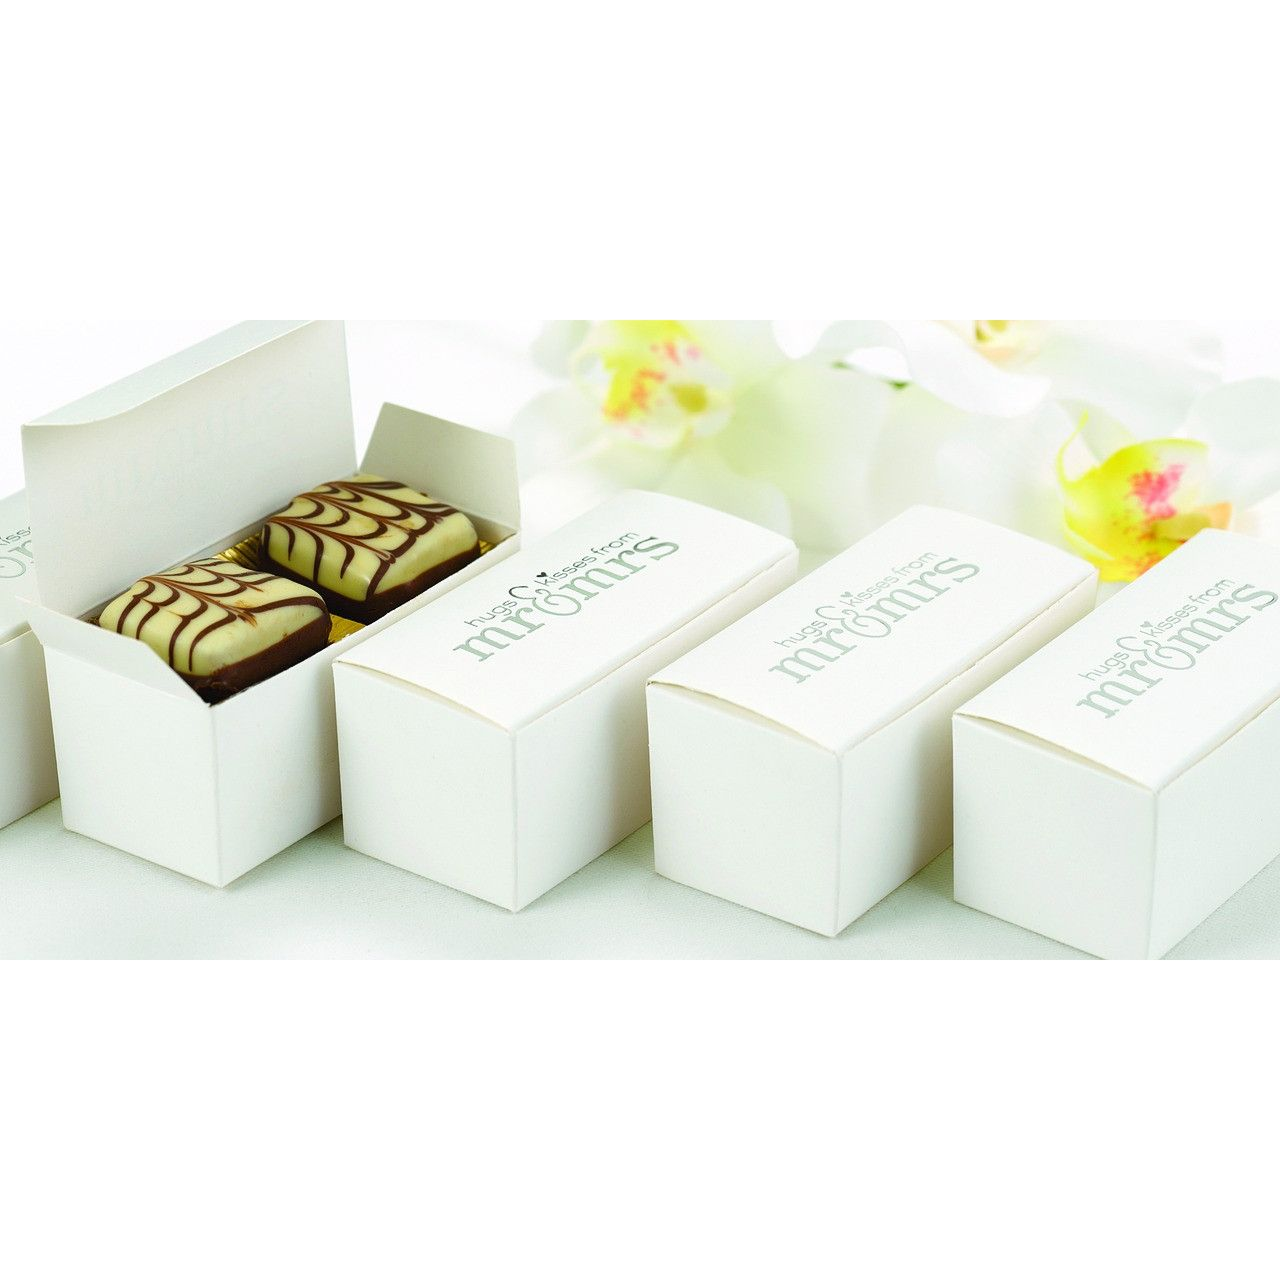 Mr and Mrs White and Silver Foil Wedding Party Favor Boxes (Pack of ...